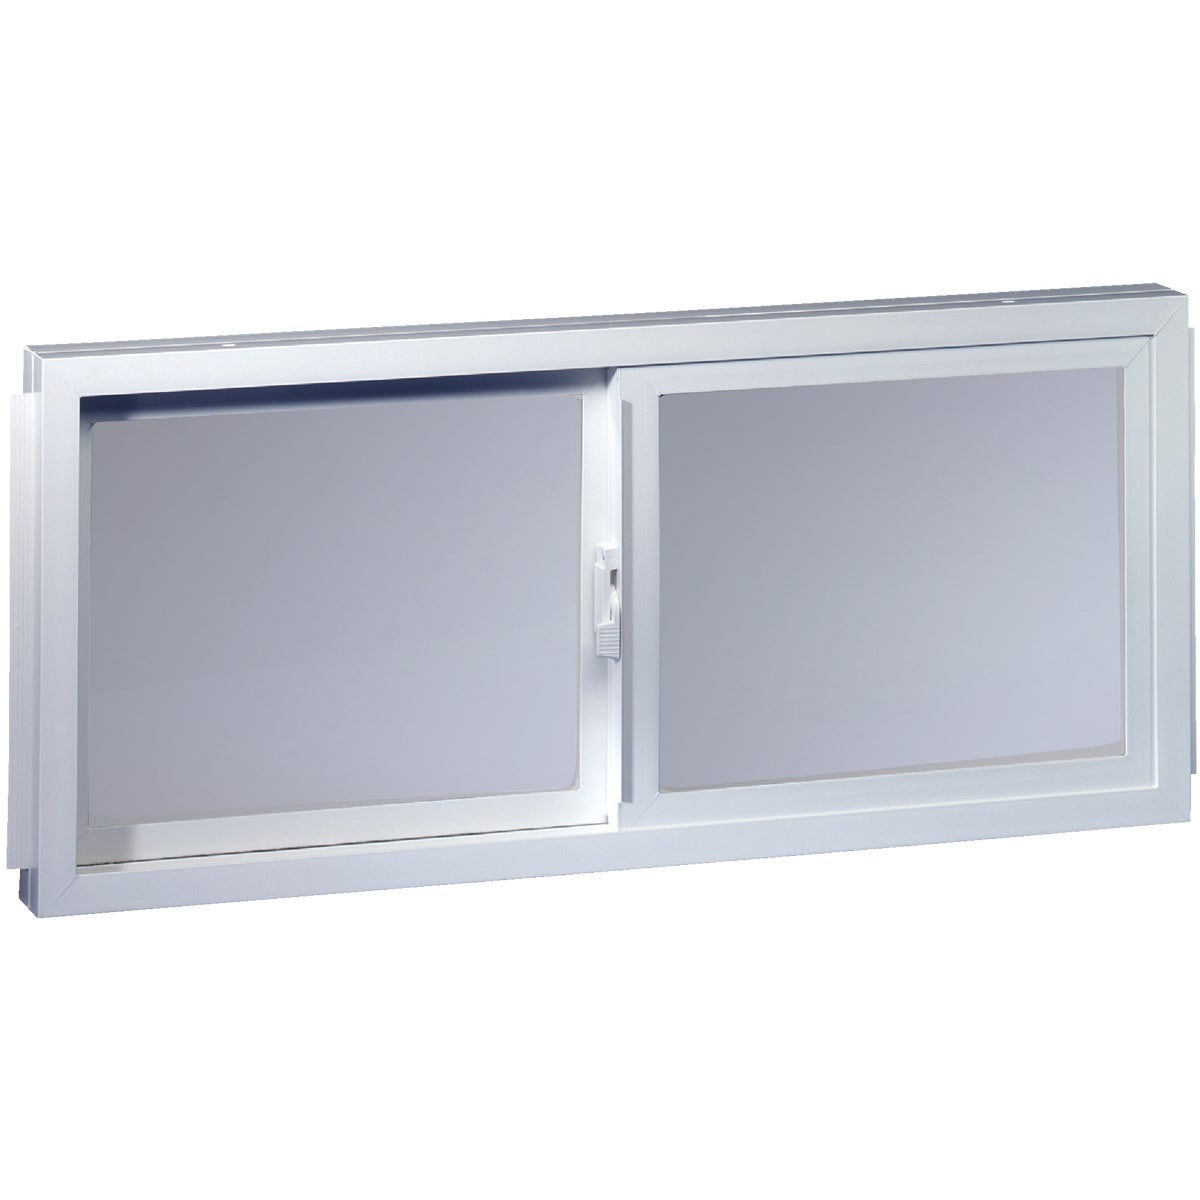 WHT BSMT SLDR WINDOW - 3222 by Duo Corp